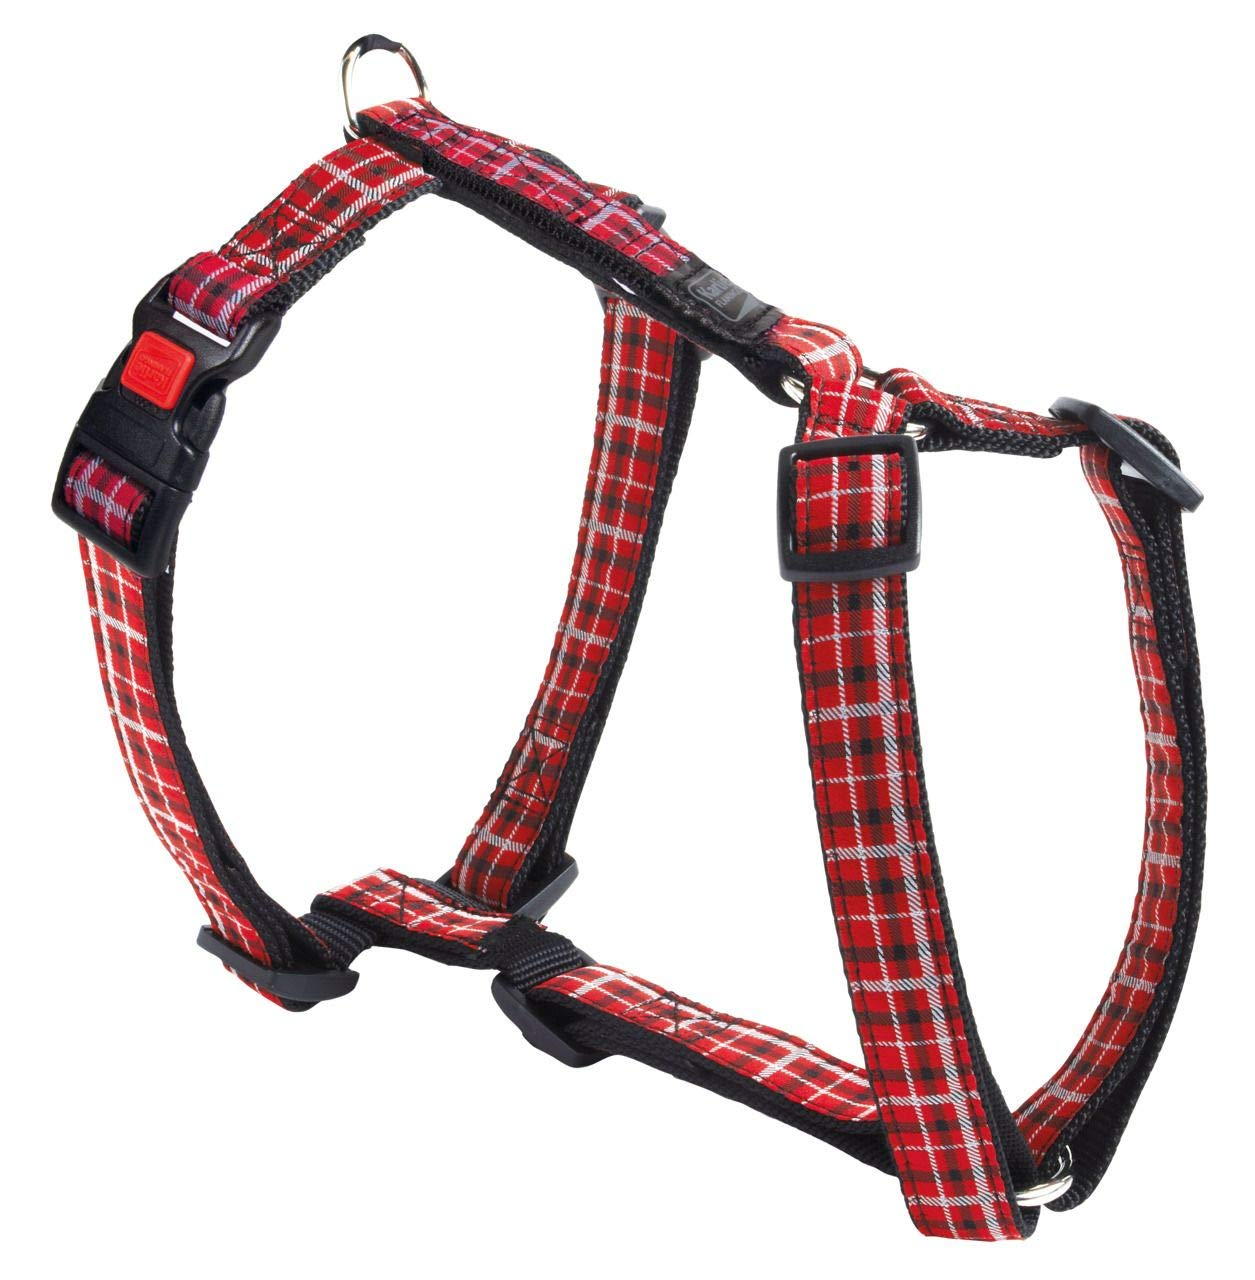 Karlie K Tartan Arnés M 45-70Cm20Mm 600 g: Amazon.es: Productos ...